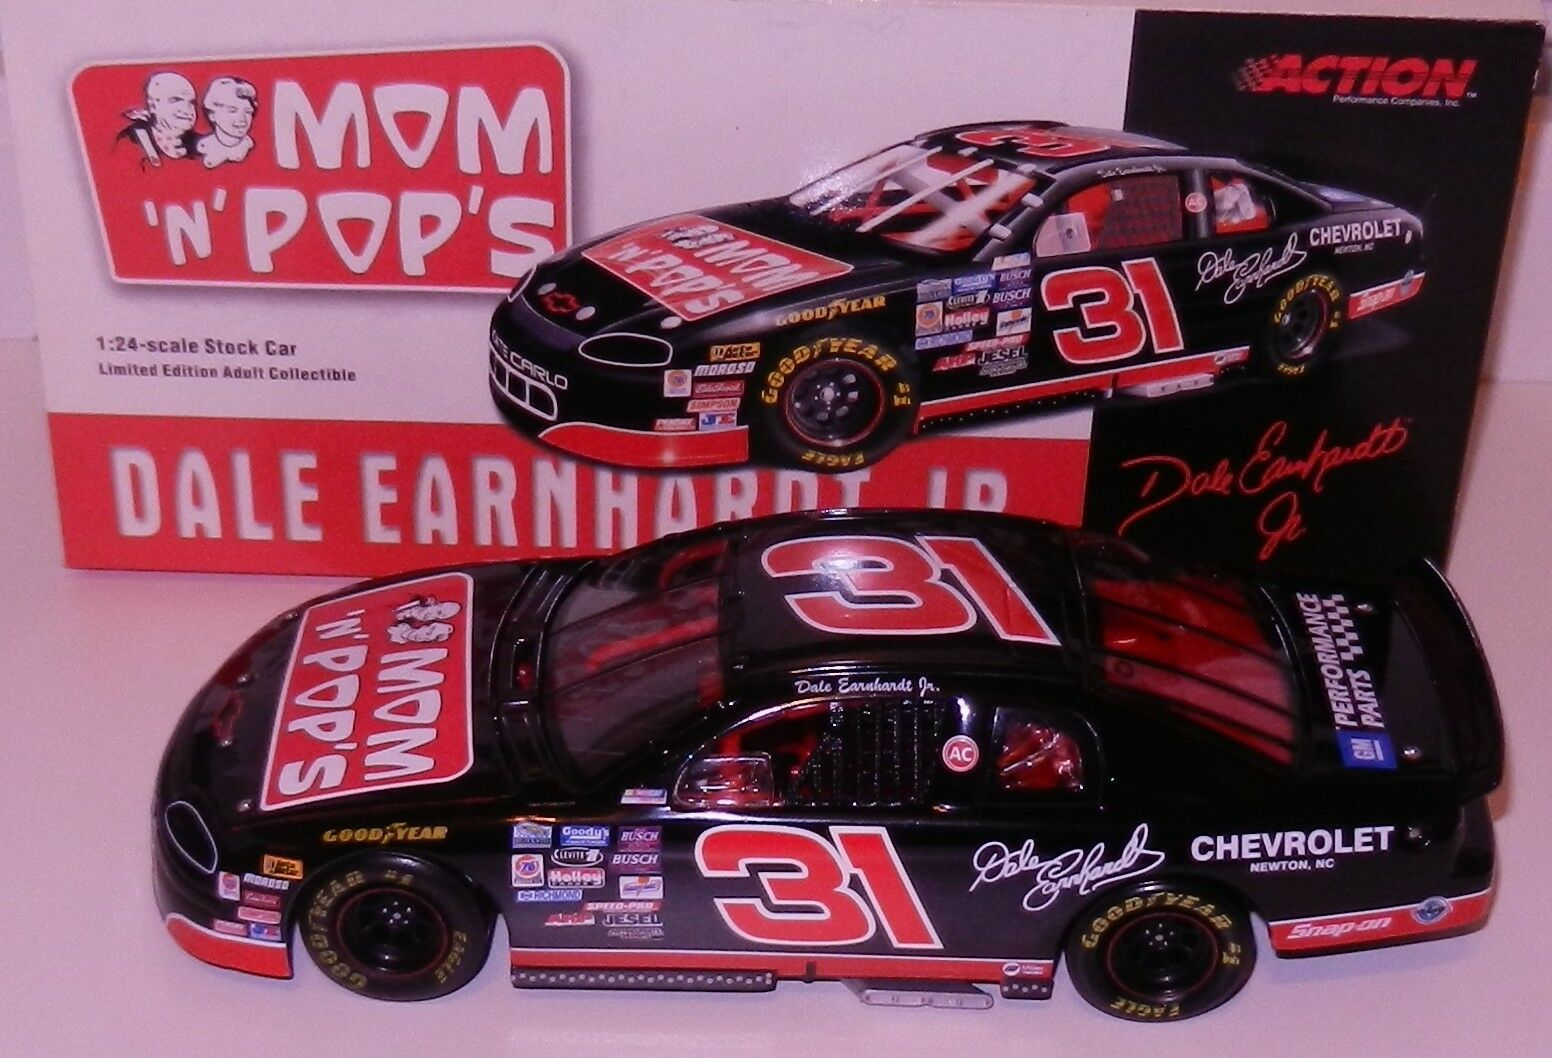 Dale Earnhardt Jr 1996 MOM' N 'POPS 1/24 CWC Action Limited Edition RARE